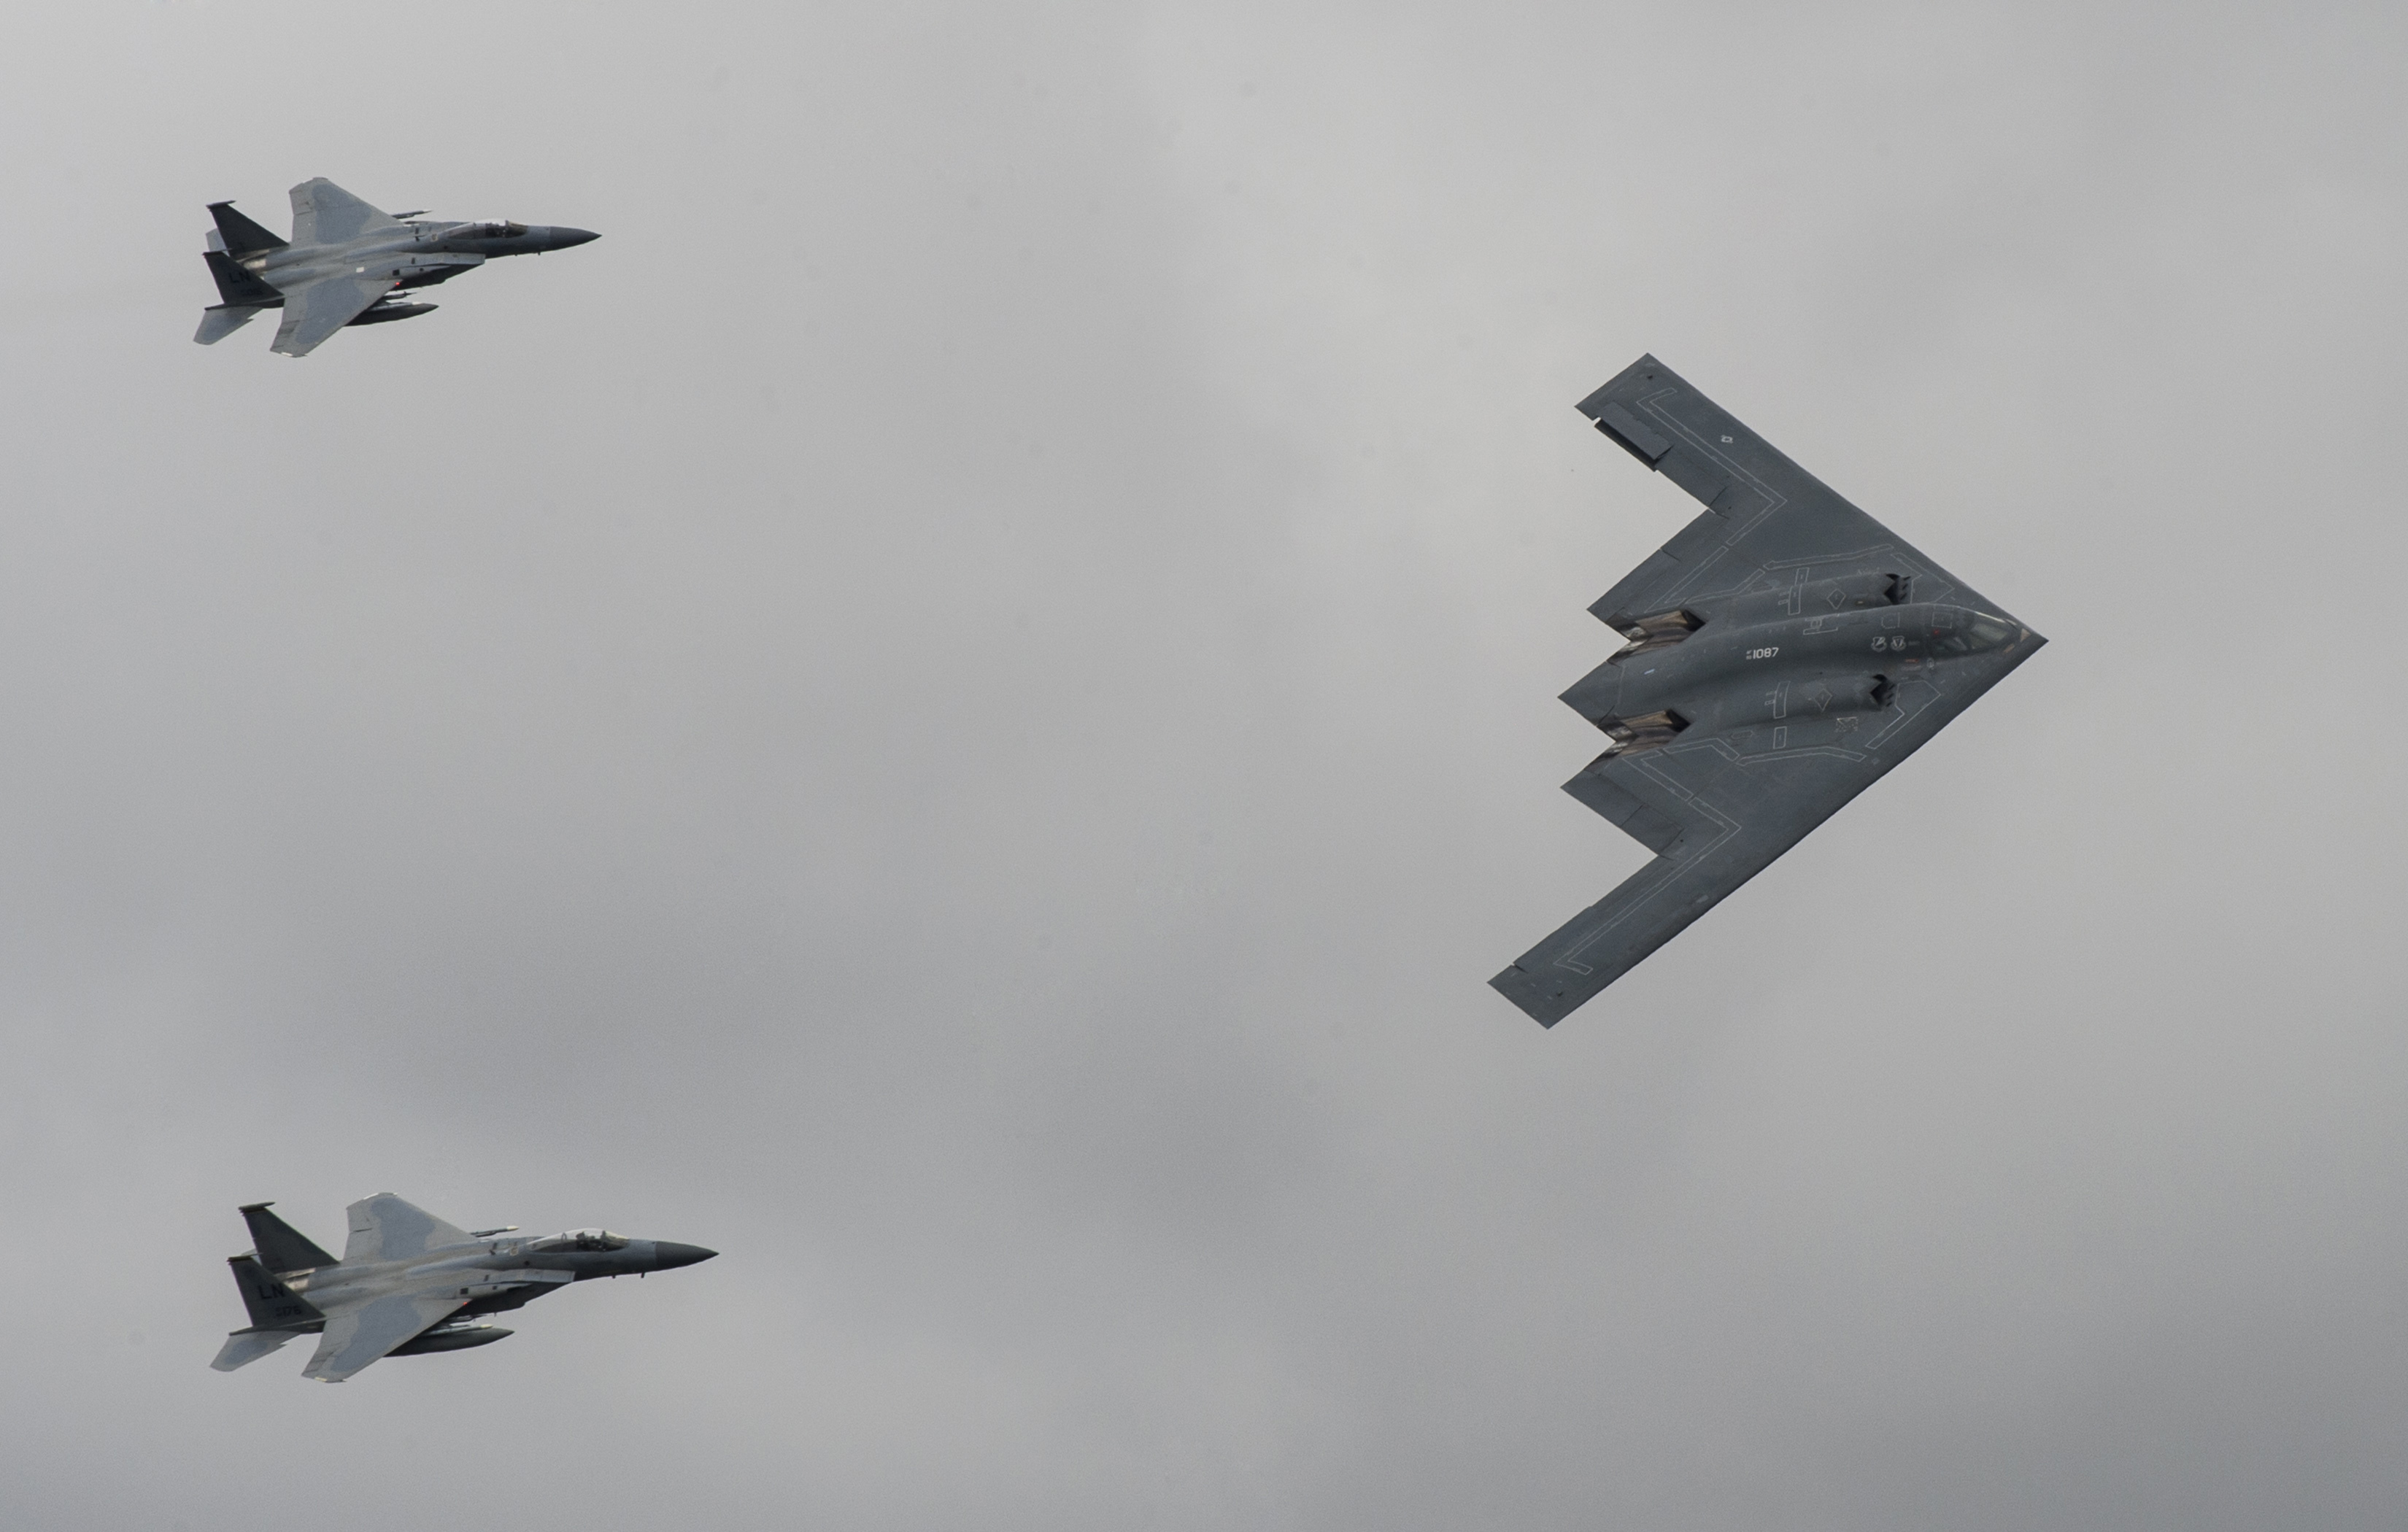 FAIRFORD, United Kingdom  – A U.S. Air Force B-2 Stealth Bomber and Two F-15 aircraft fly past spectators during the 2017 Royal International Air Tattoo (RIAT) located at RAF Fairford, United Kingdom, on July 16, 2017. This year commemorates the U.S. Air Force's 70th Anniversary which was highlighted during RIAT by displaying its lineage and advancements in military aircraft. (U.S. Air Force Photo by Tech. Sgt. Brian Kimball)